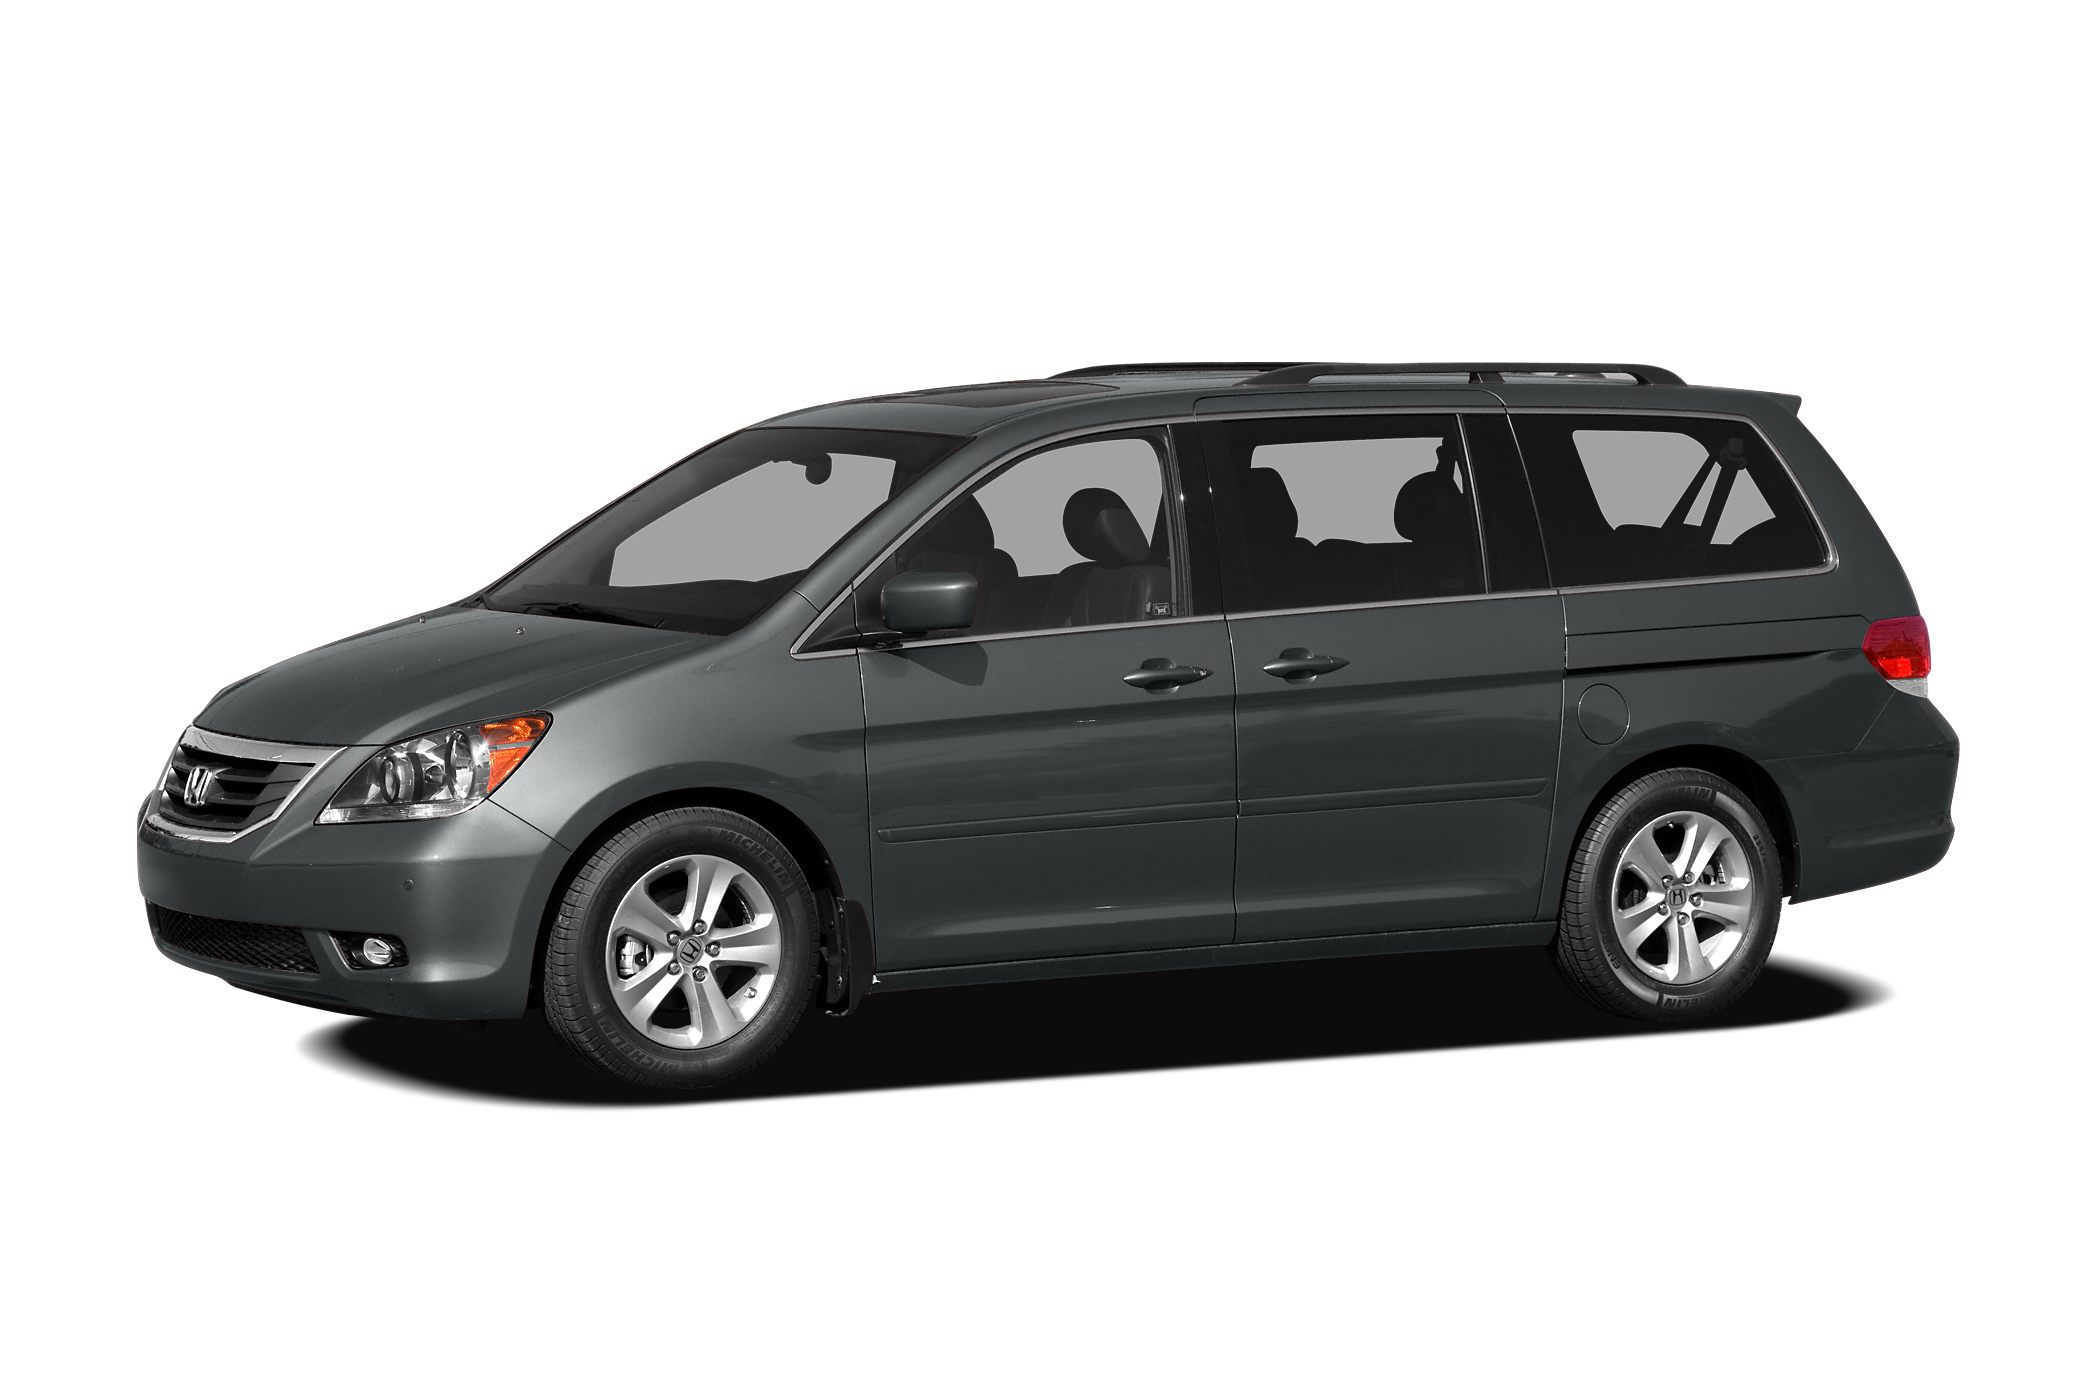 2010 Honda Odyssey EX 1400 below Kelley Blue Book EX trim CARFAX 1-Owner GREAT MILES 53944